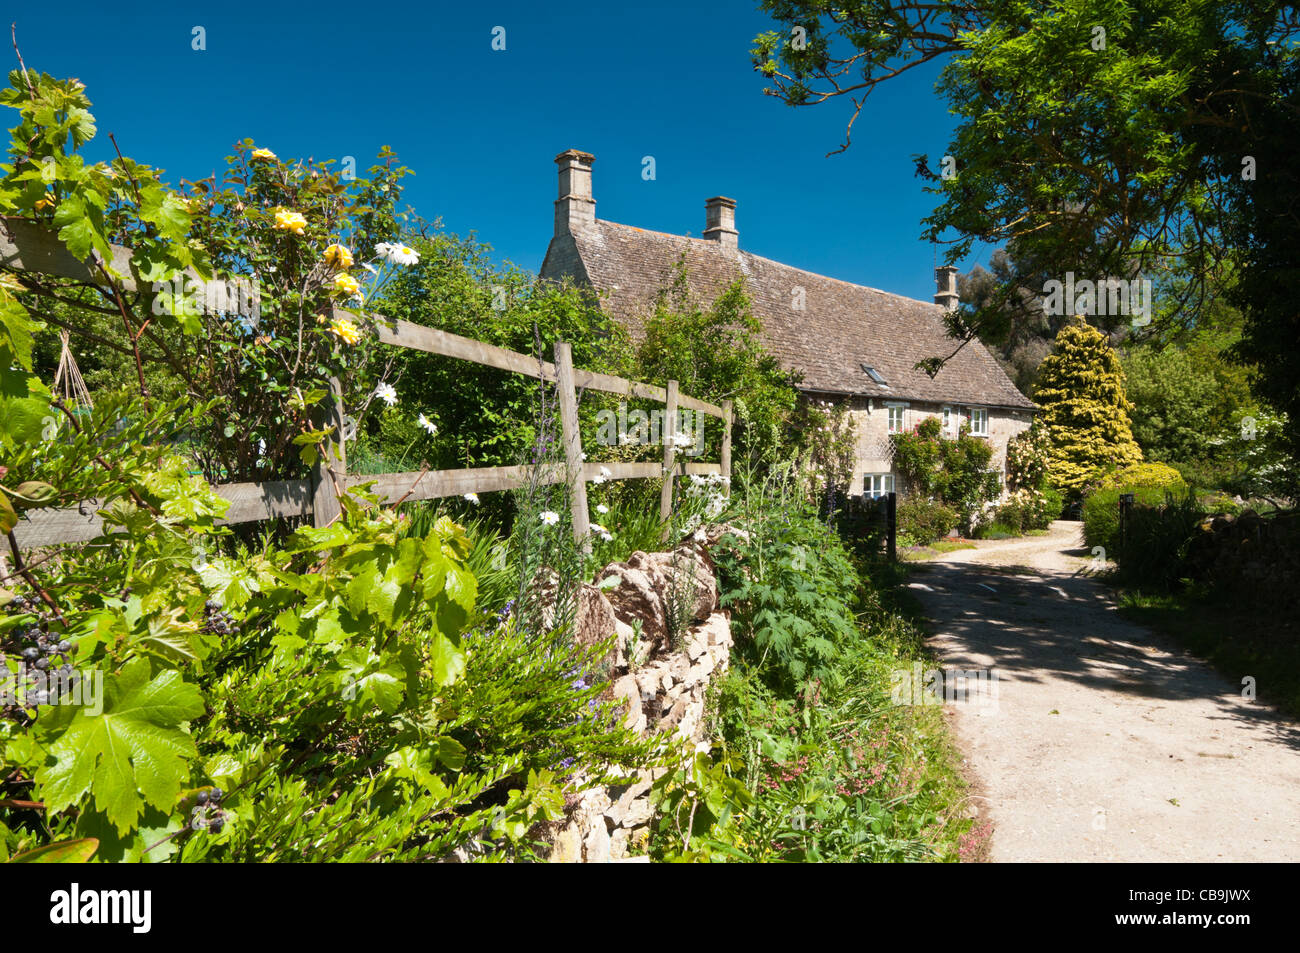 Stone house cottage gardens stock photos stone house cottage a narrow lane leads to a stone built house with rose covered walls in the village workwithnaturefo